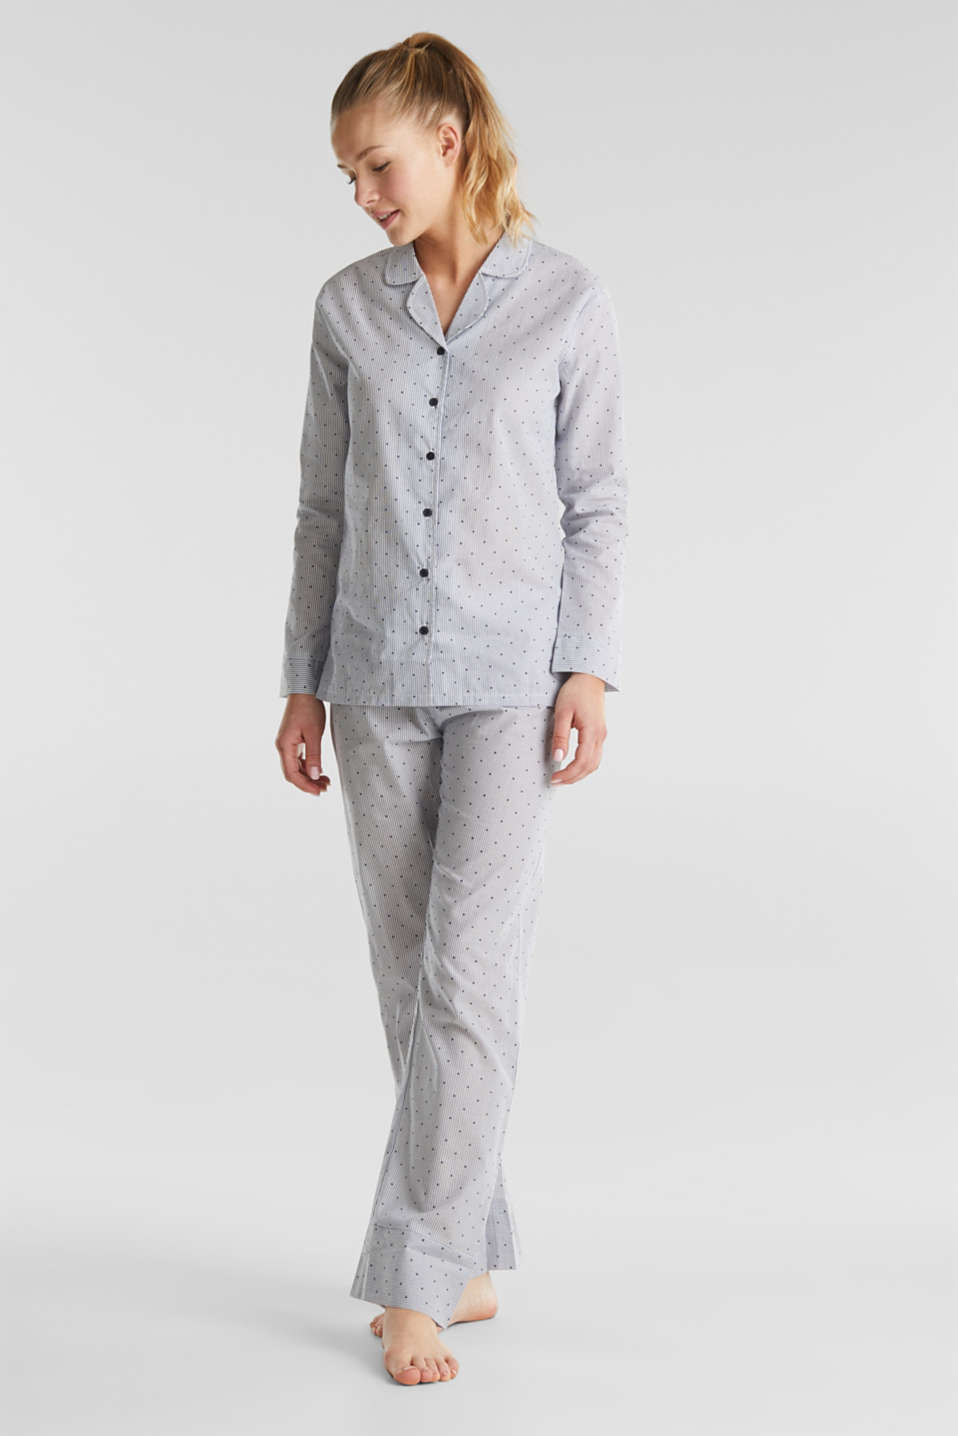 Esprit - Woven pyjamas made of 100% cotton